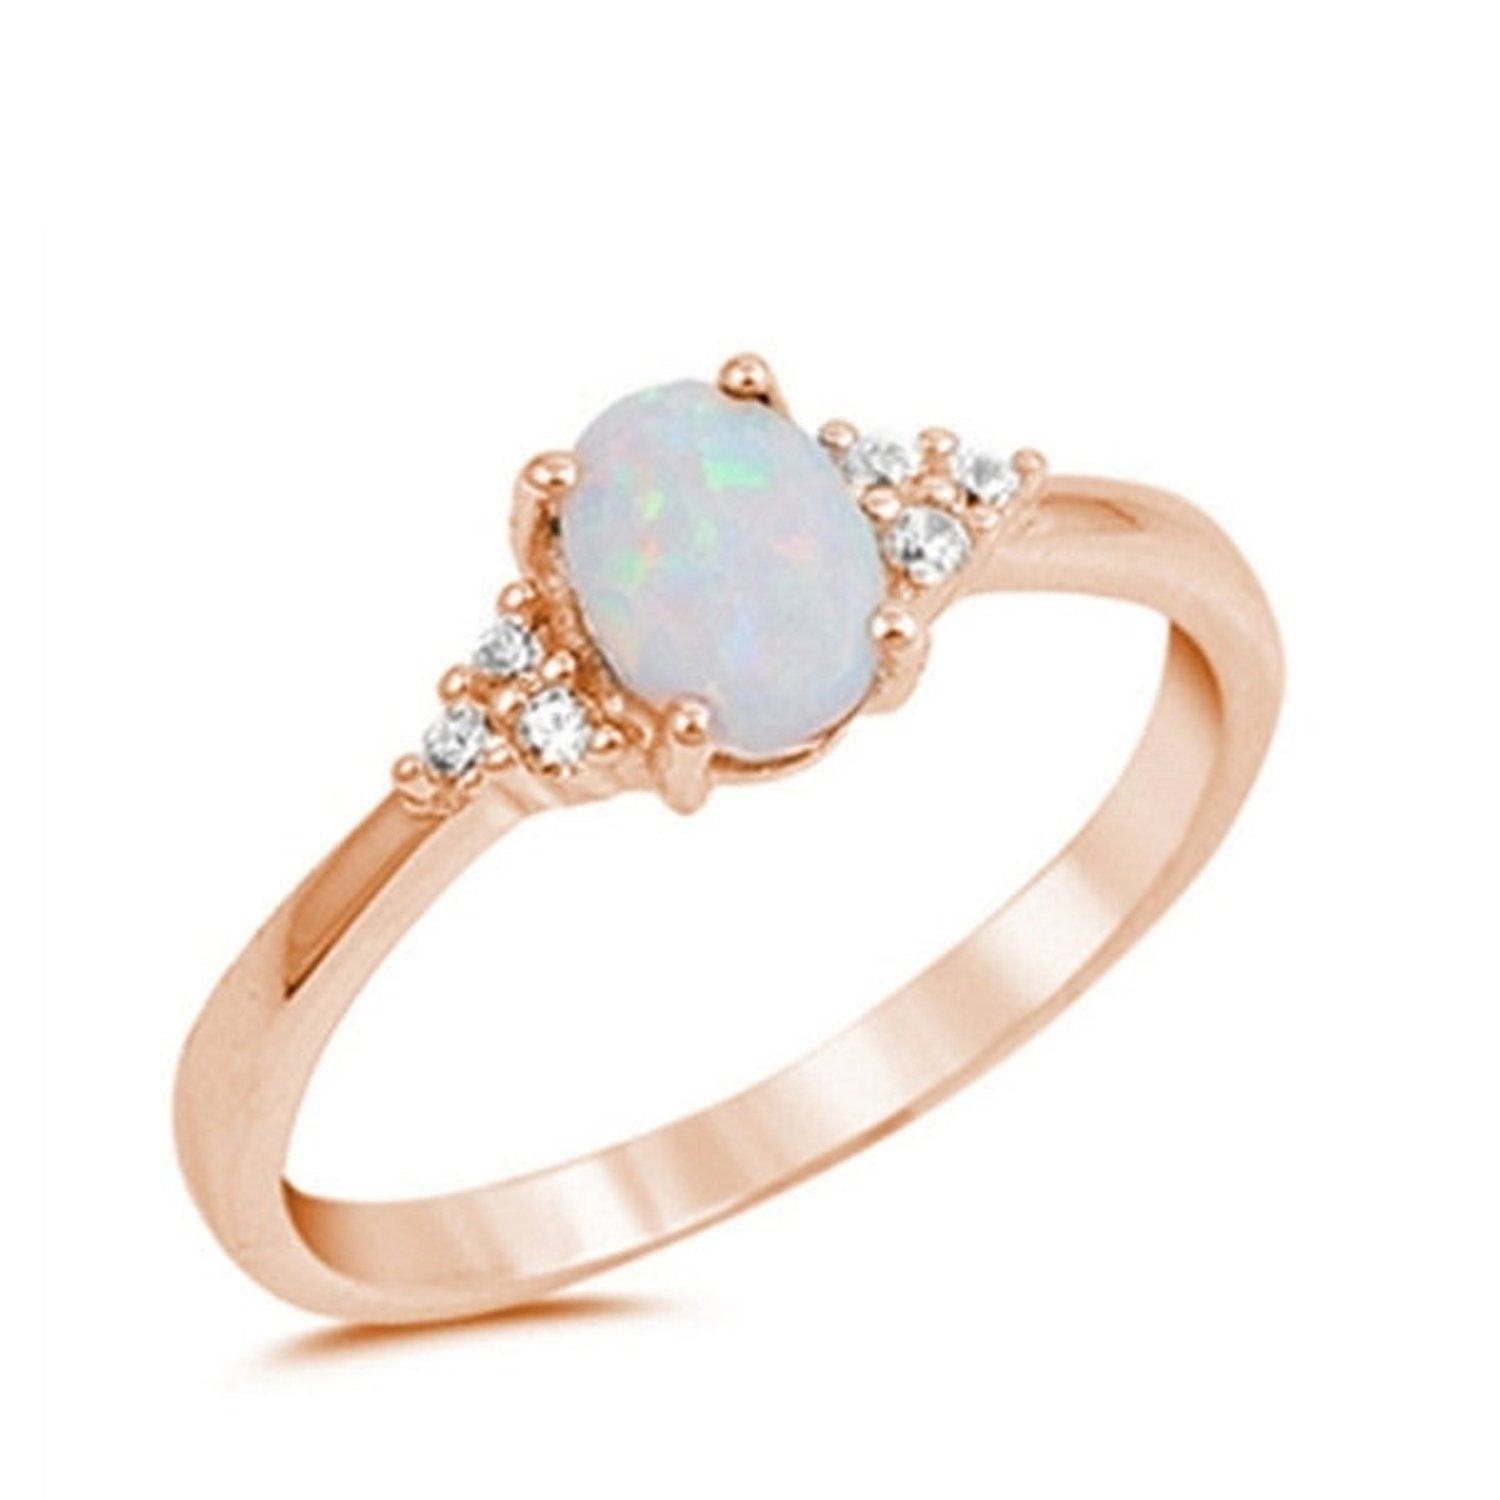 Blue Apple Co. 925 Sterling Silver Oval Cut Created White Opal Ring Rose Tone Round Simulated Cubic Zirconia, Size - 9